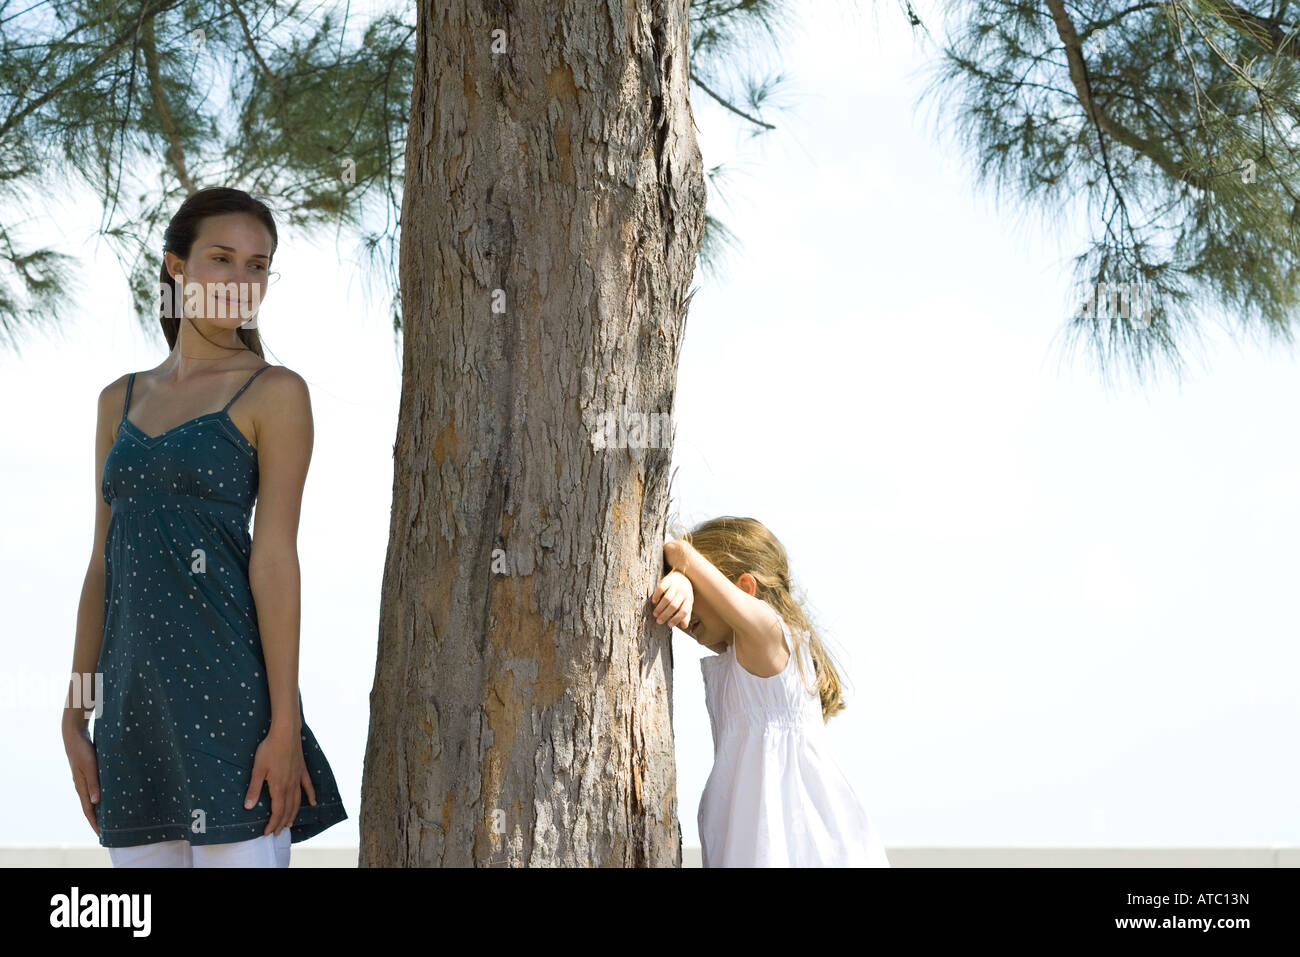 Two sisters playing hide-and-seek together Stock Photo